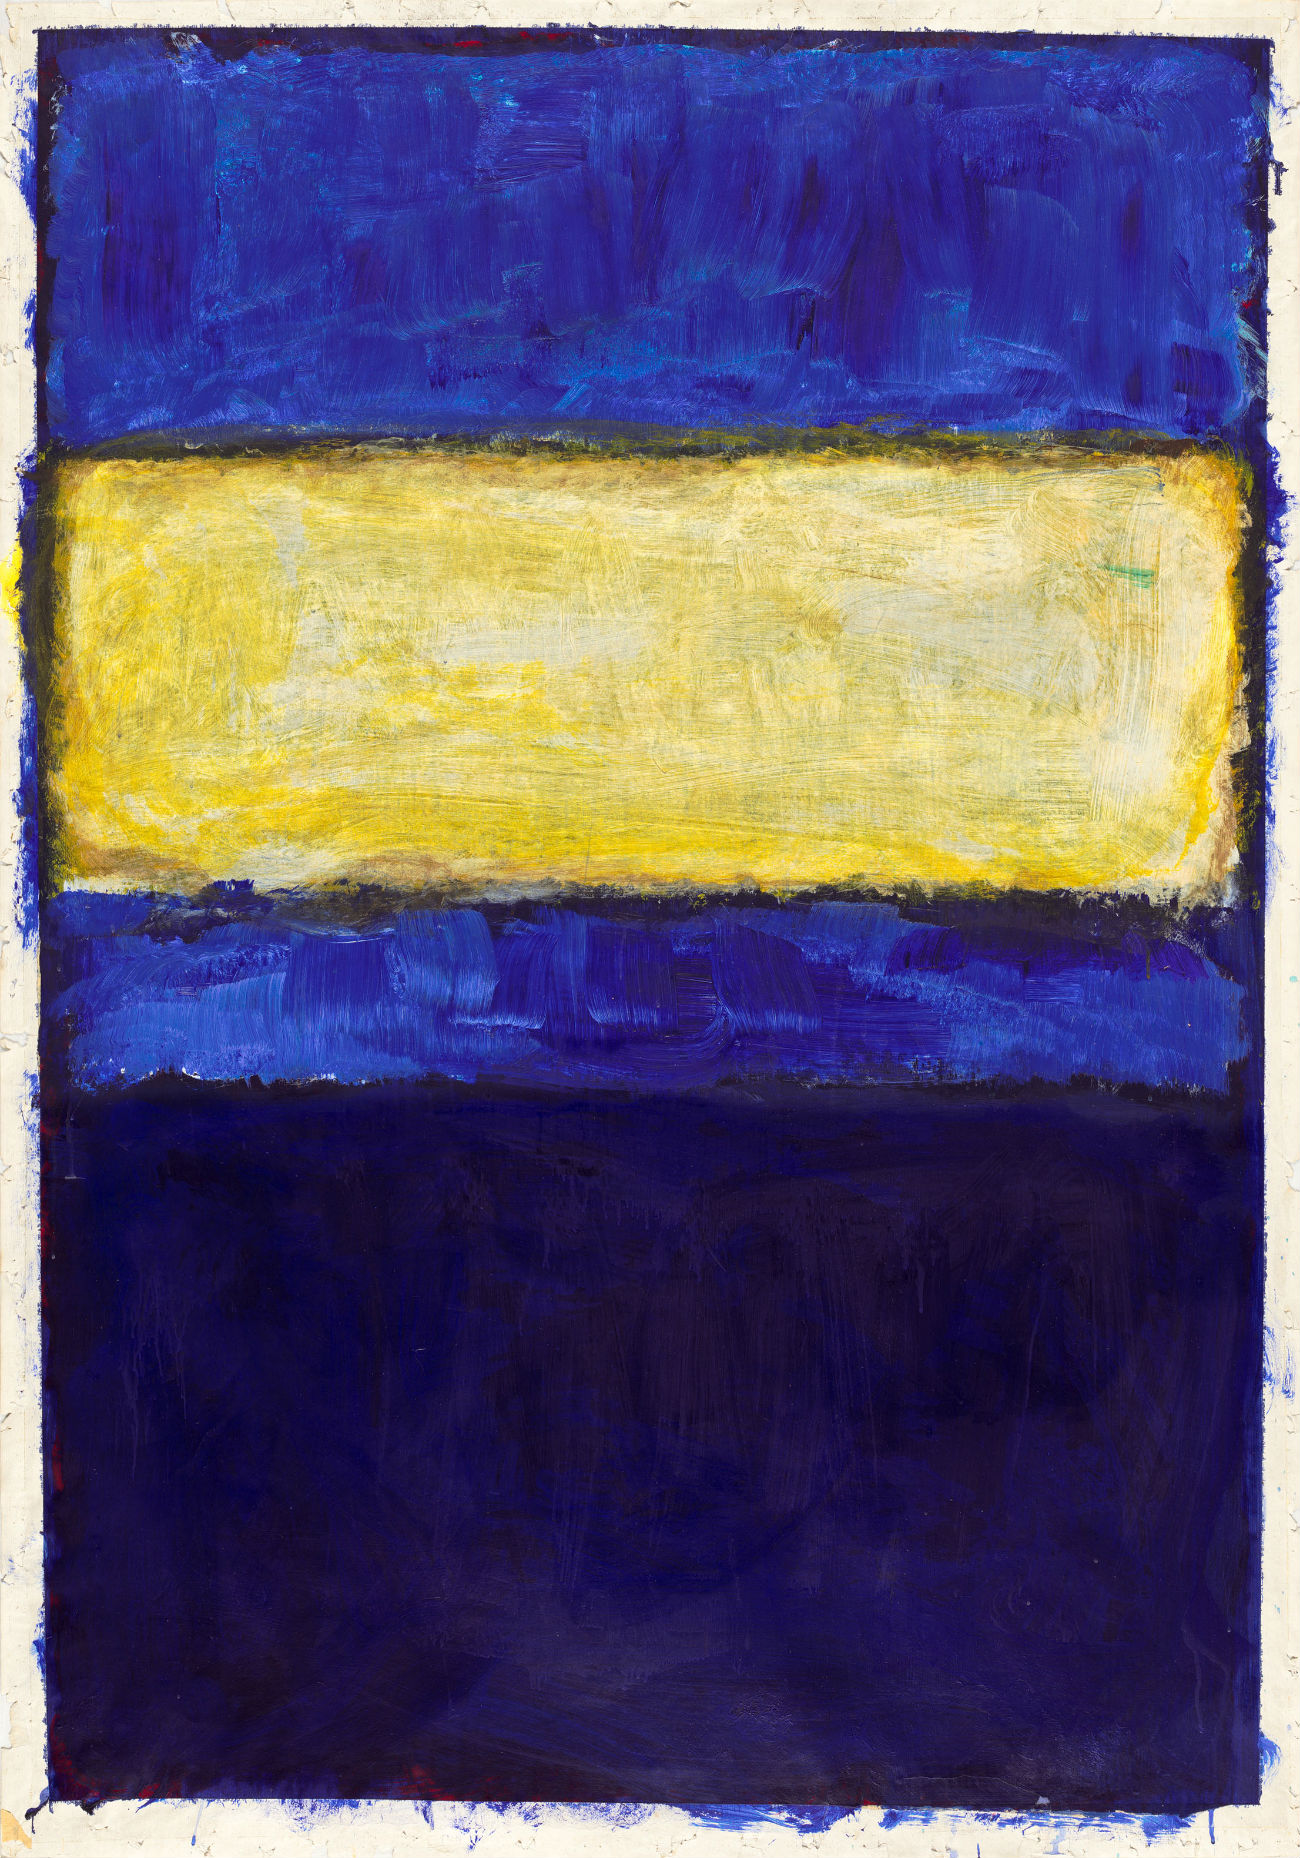 Untitled 1968 acrylic on paper Mark Rothko (Gemeentemuseum)